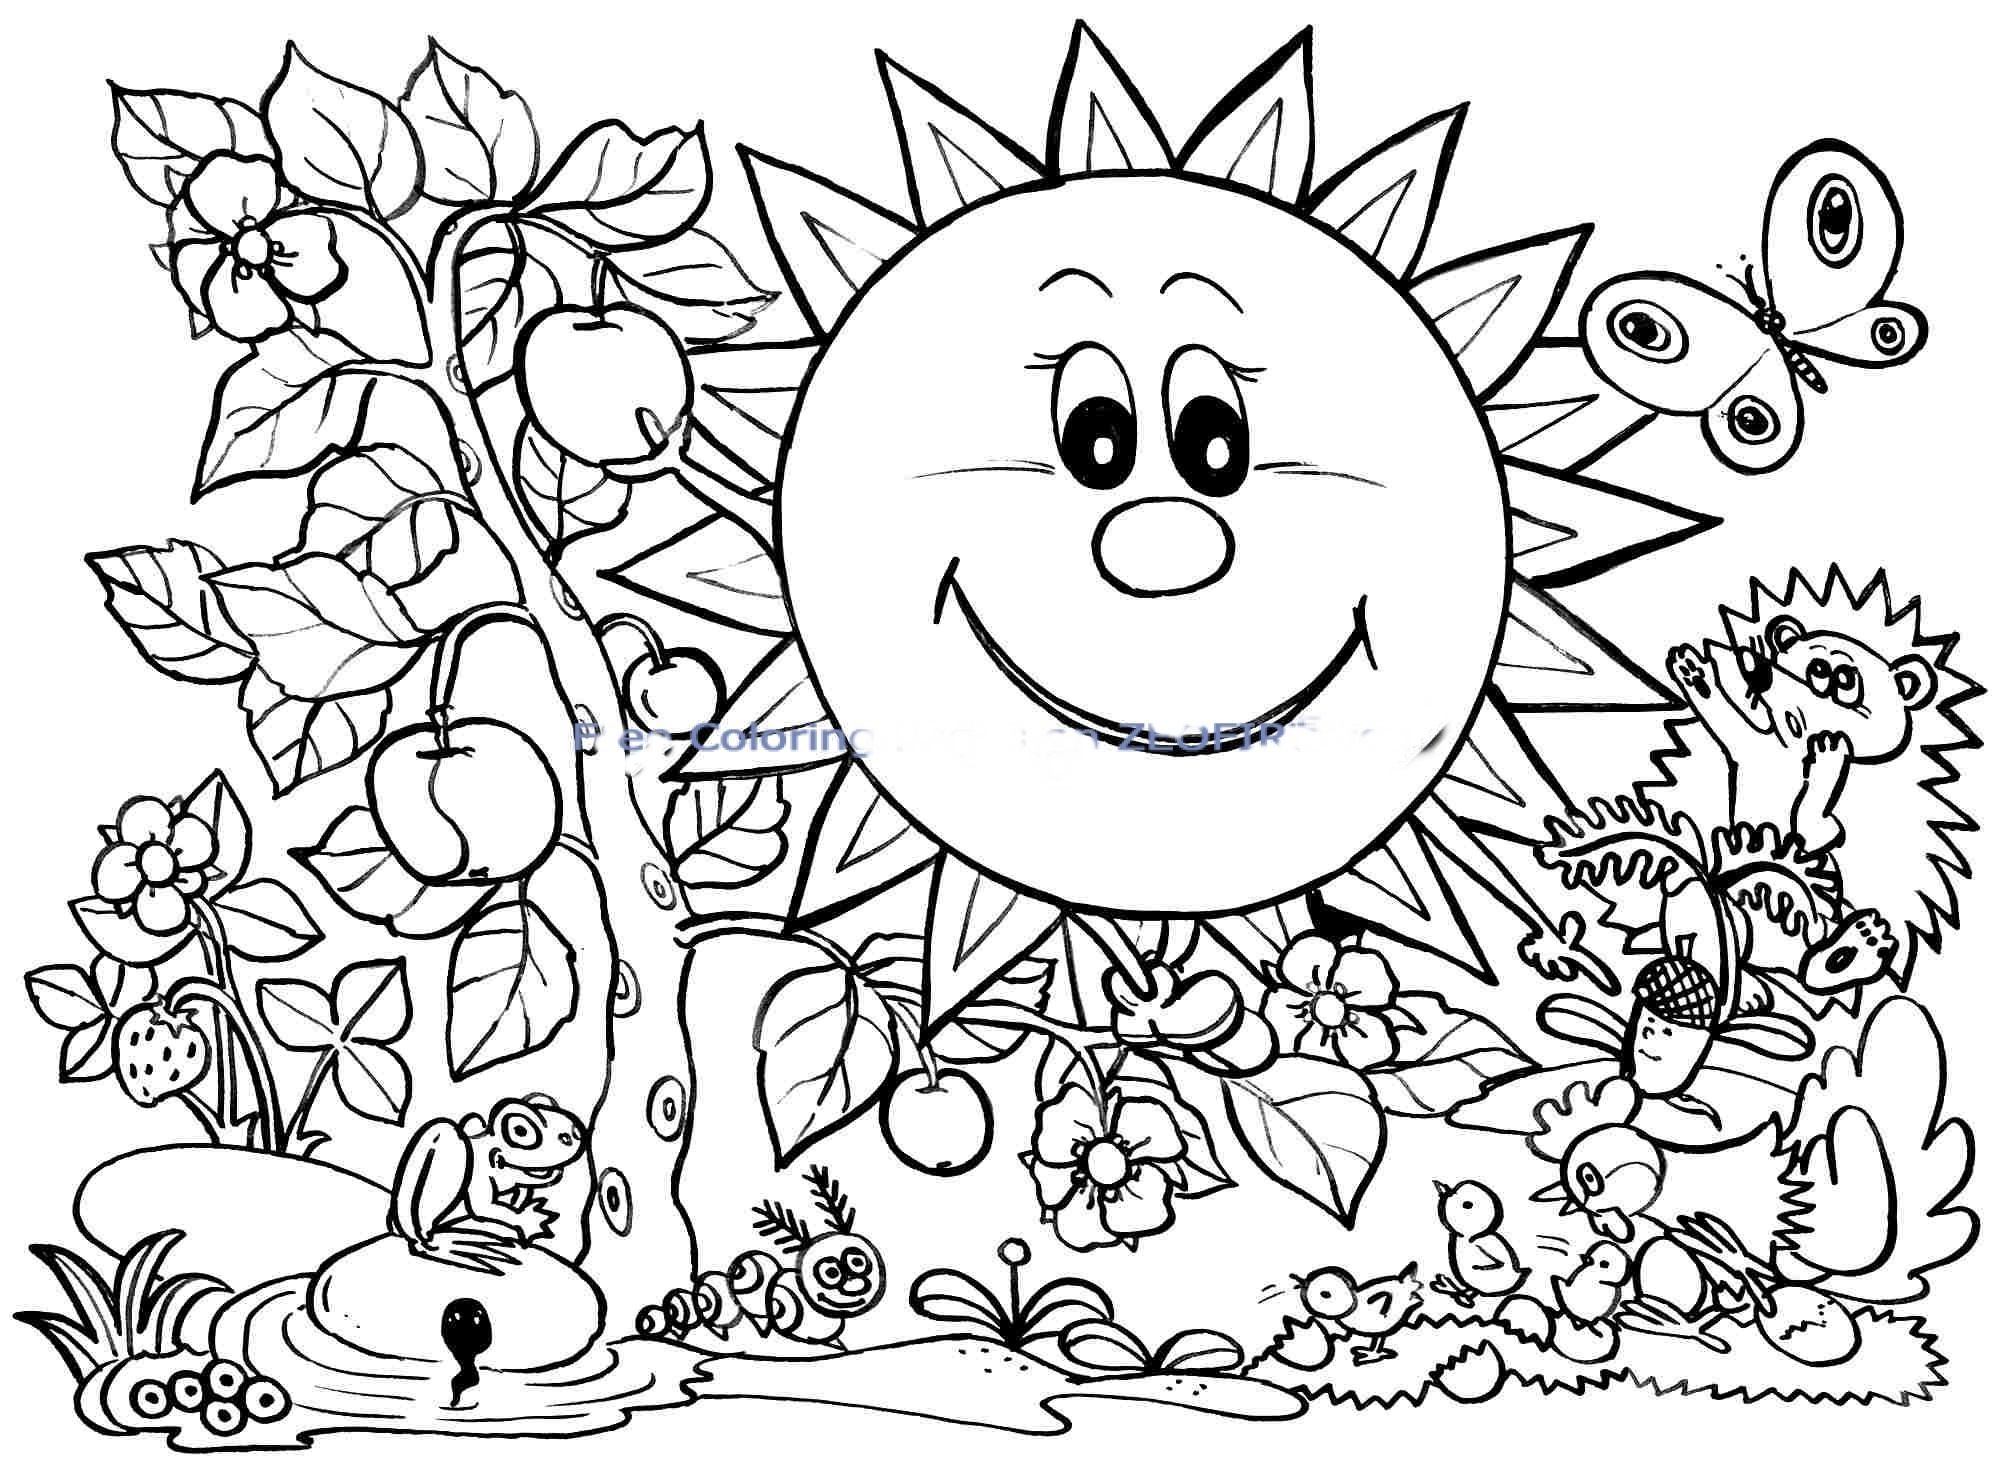 Coloring Book : Coloring Book Stunning Free Printable Spring Pages - Free Printable Spring Pictures To Color